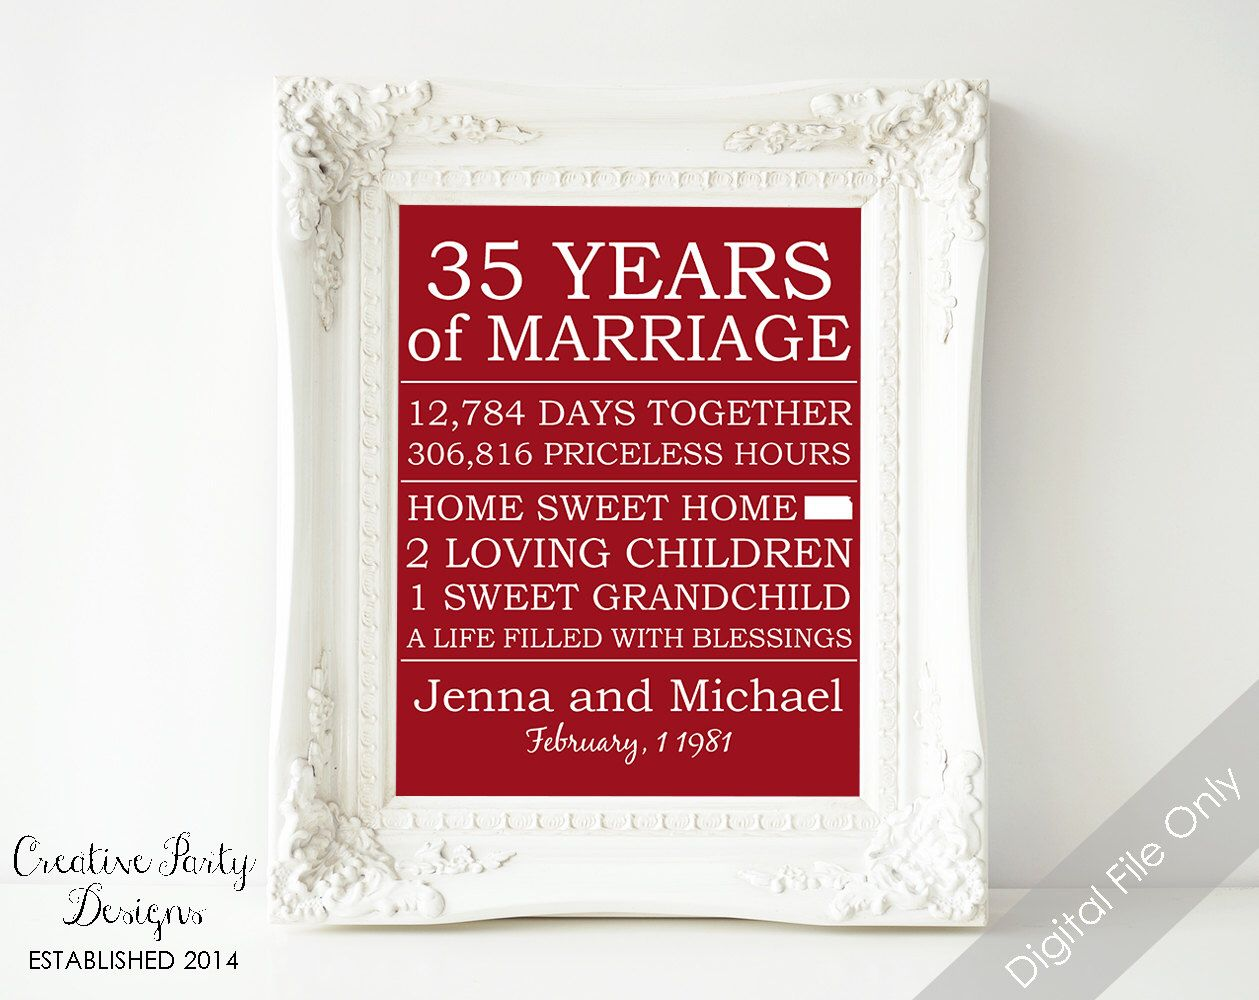 Wedding Anniversary Gift Parents: Personalized Anniversary Gift For